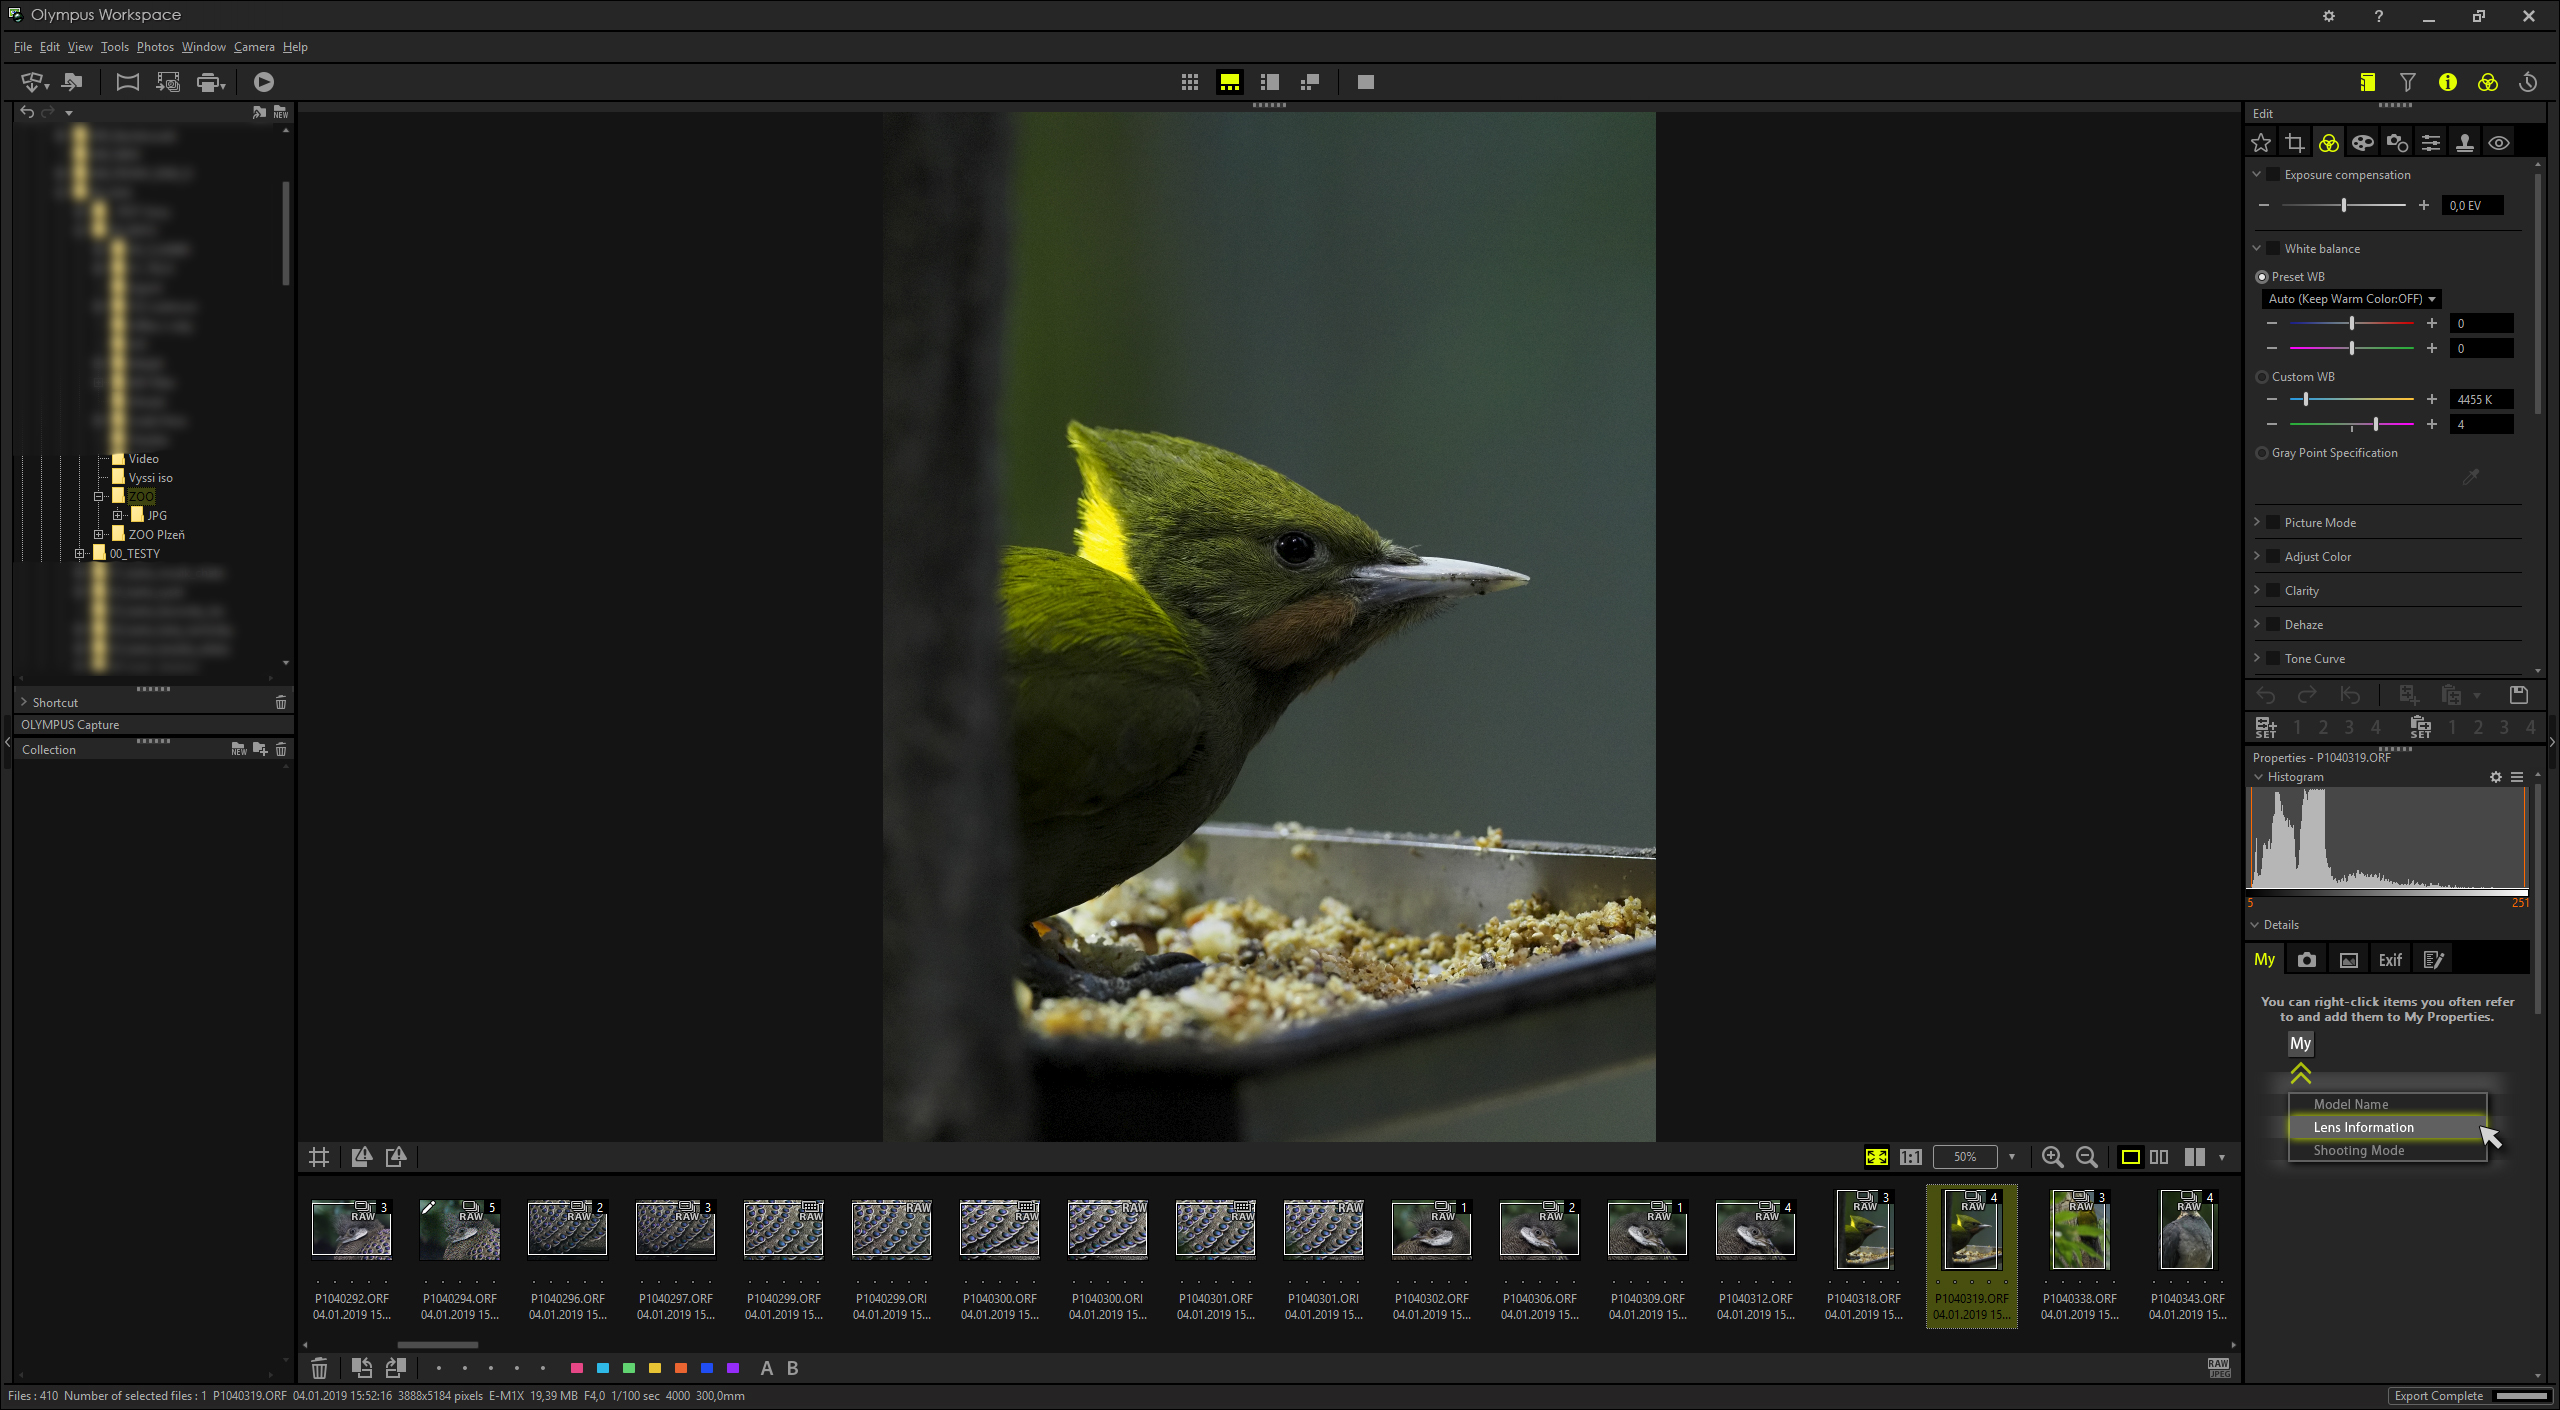 New Olympus Workspace software for RAW editing